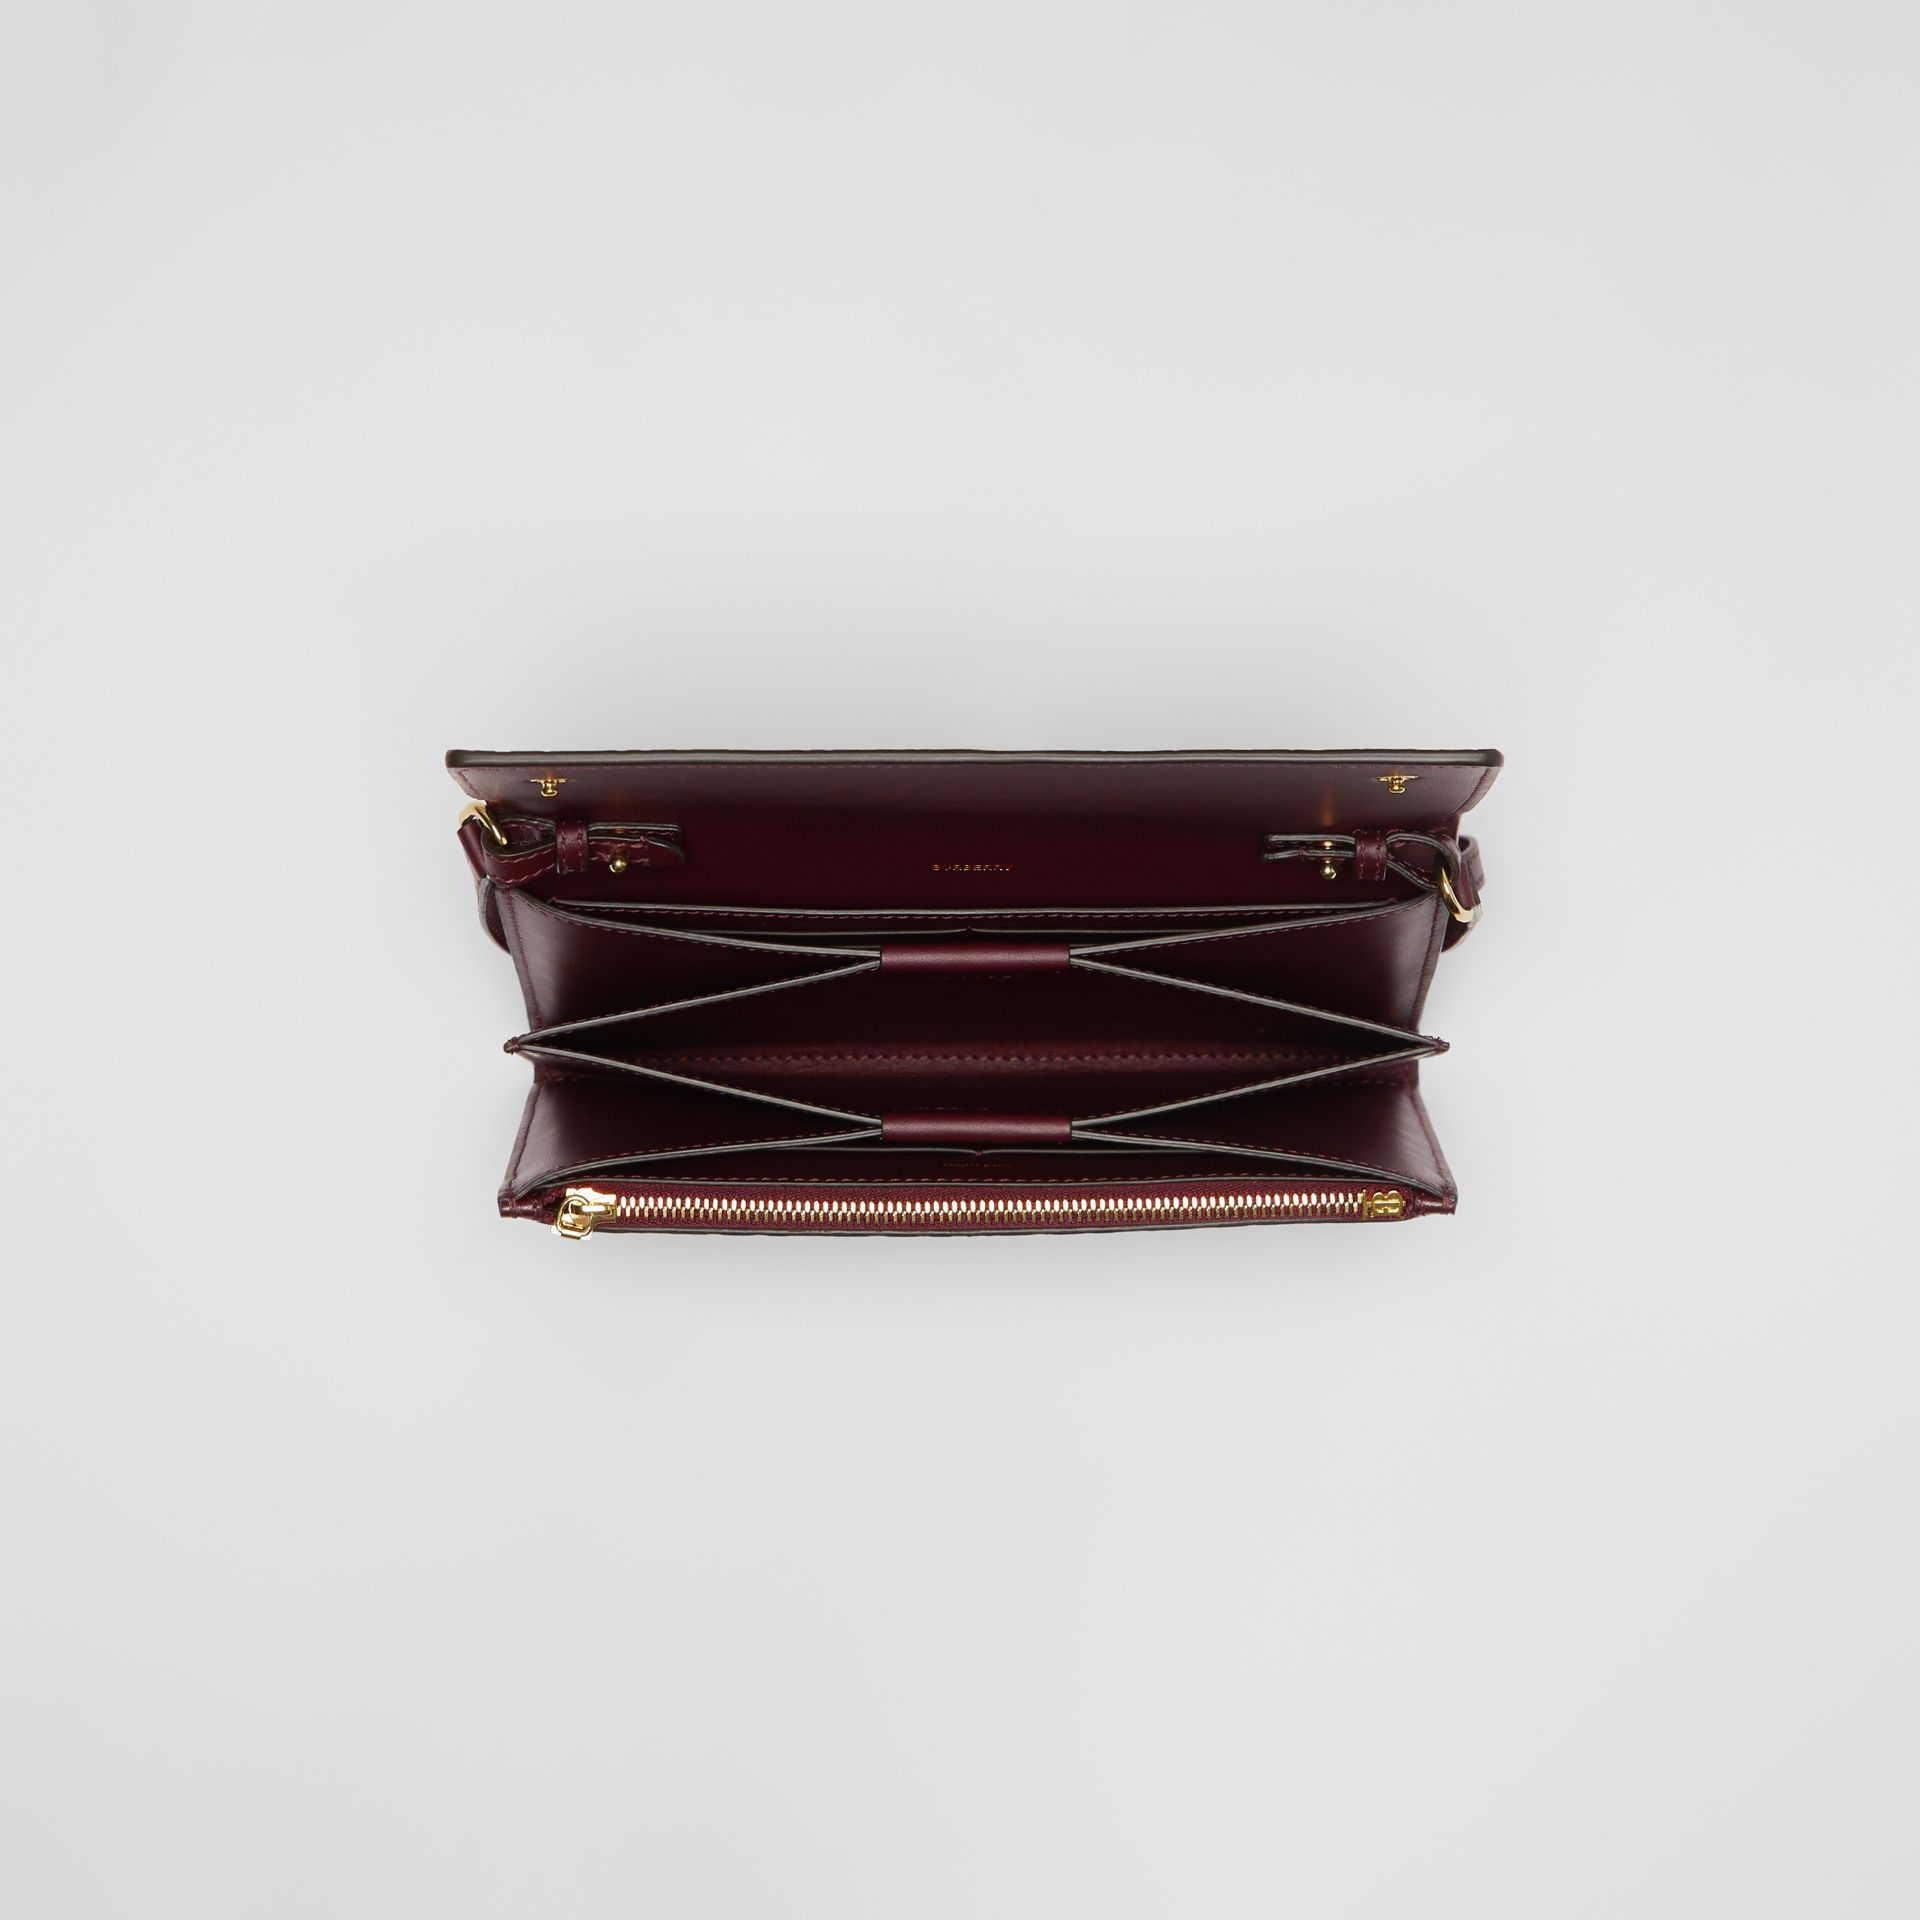 Monogram Leather Wallet with Detachable Strap in Oxblood - Women | Burberry Singapore - gallery image 4